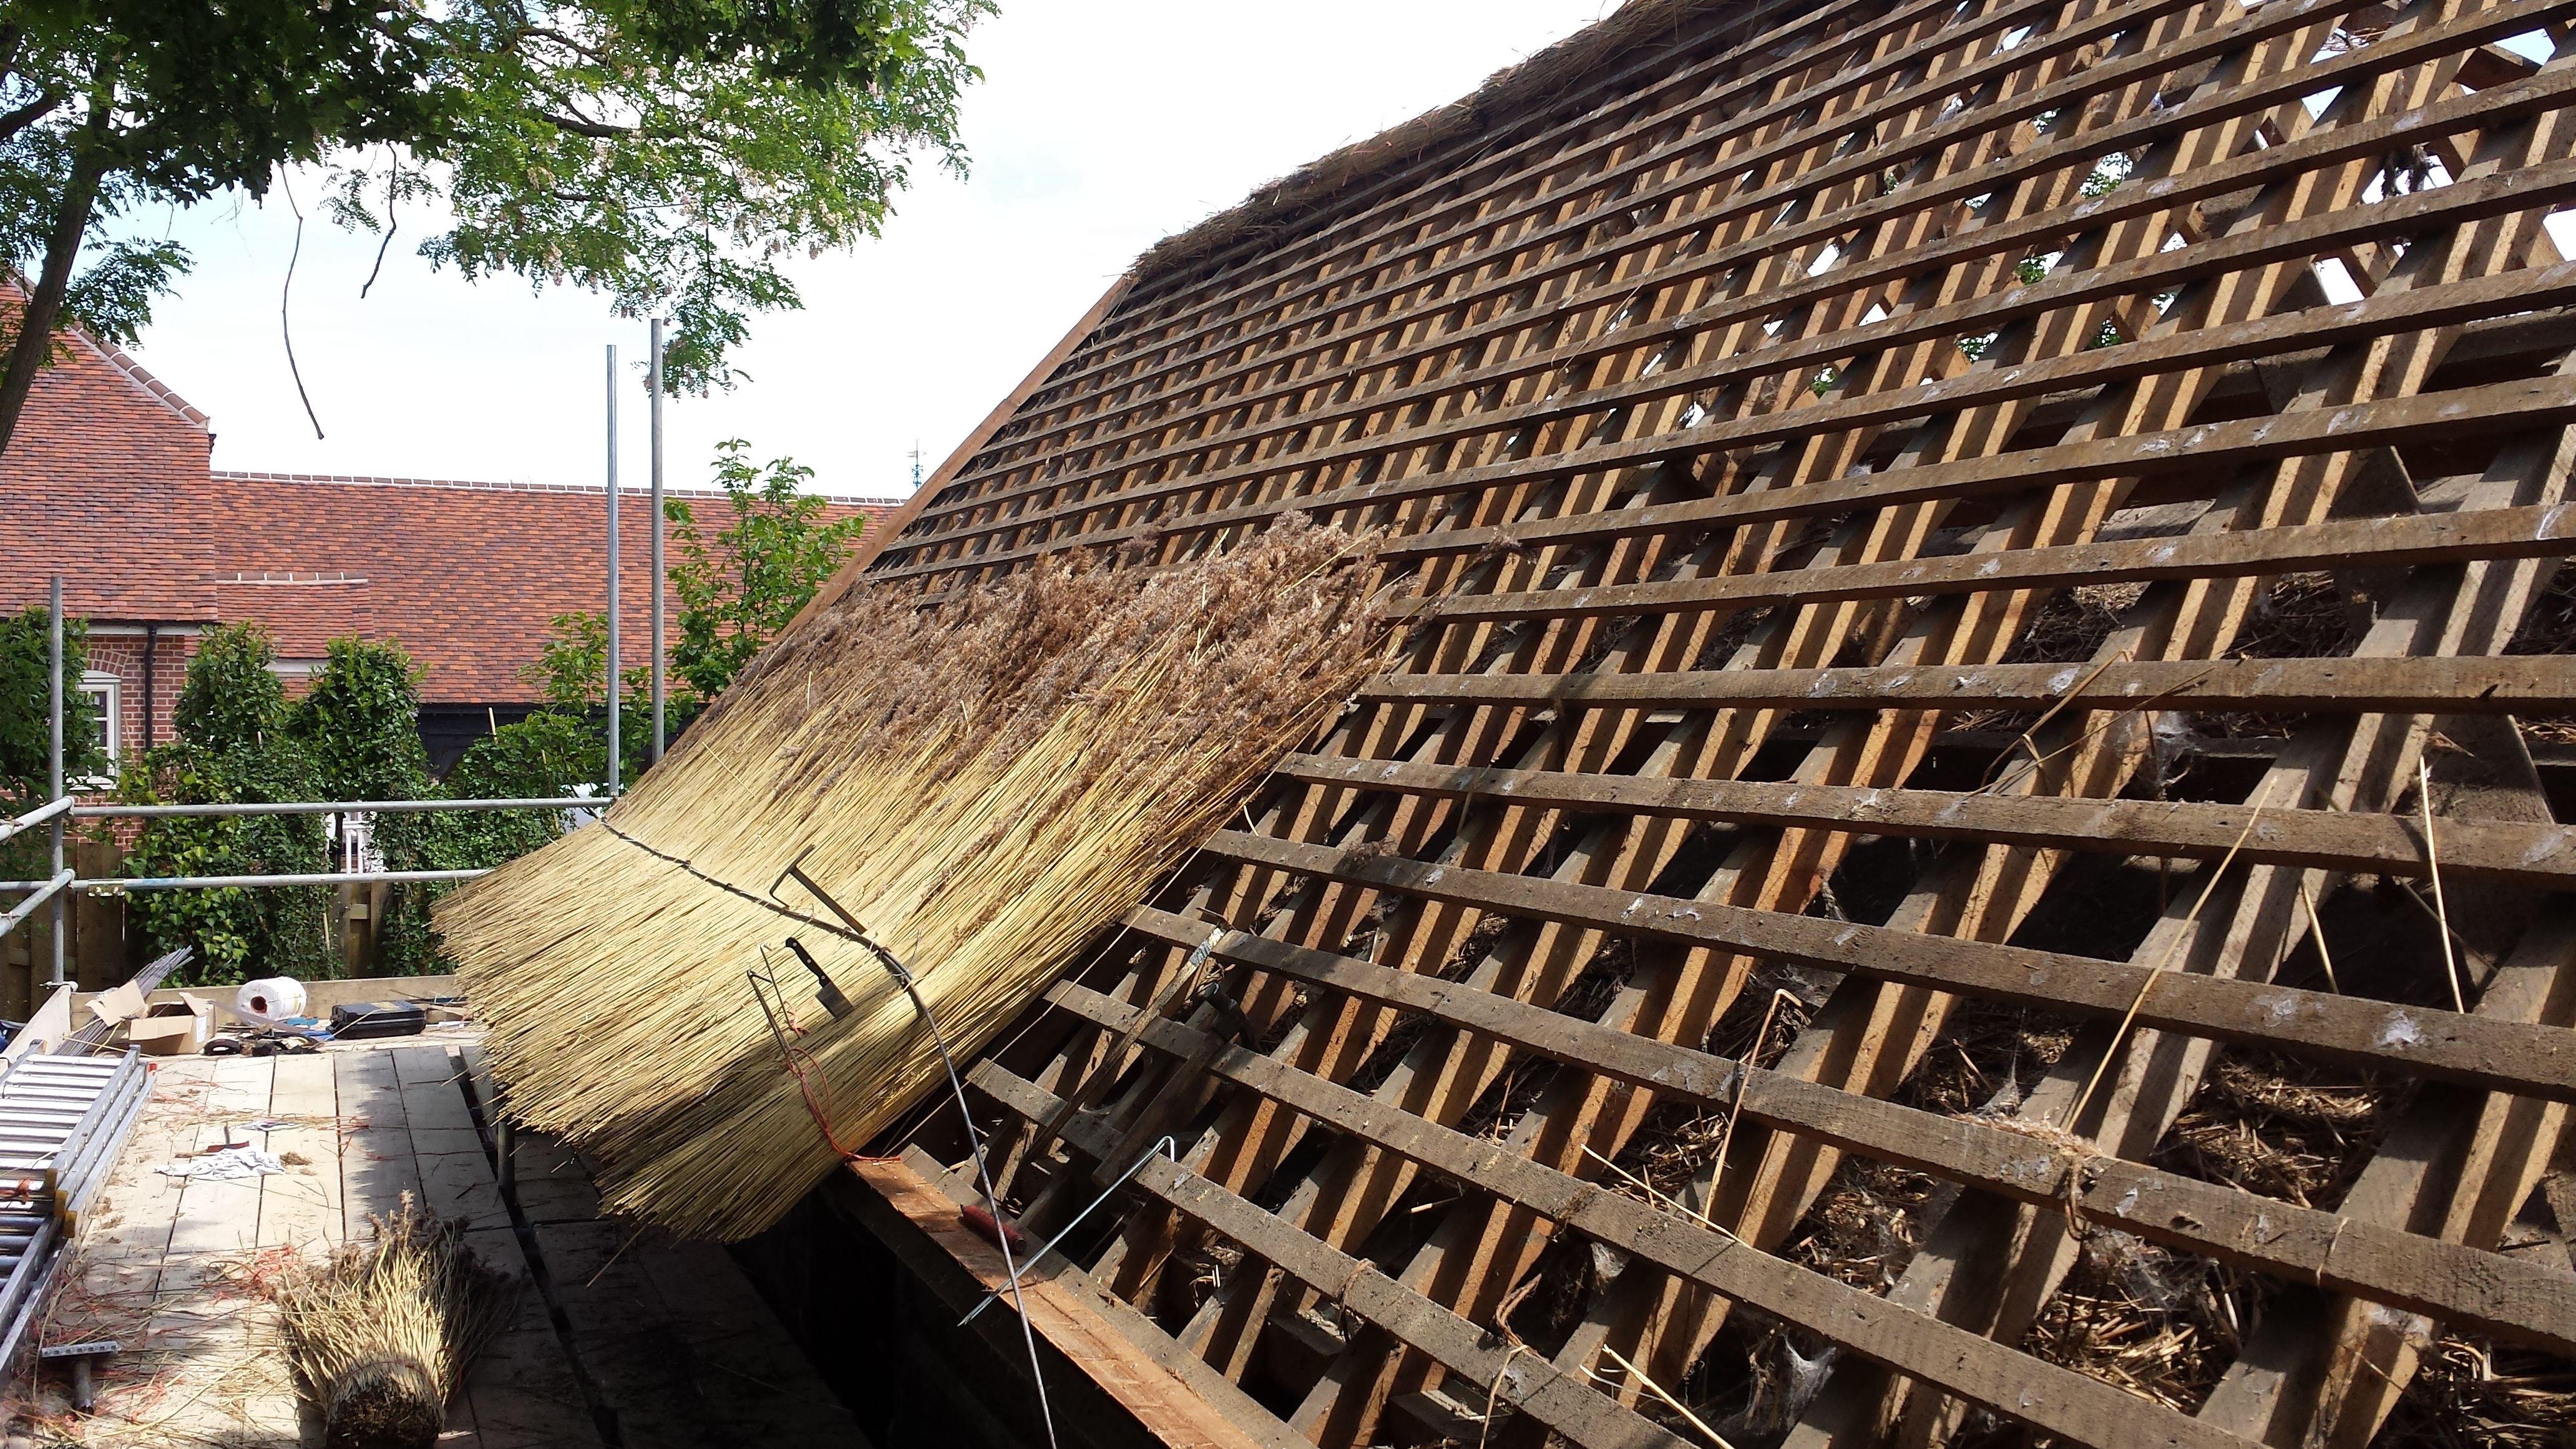 preparing a thatched roof structure d g shelley